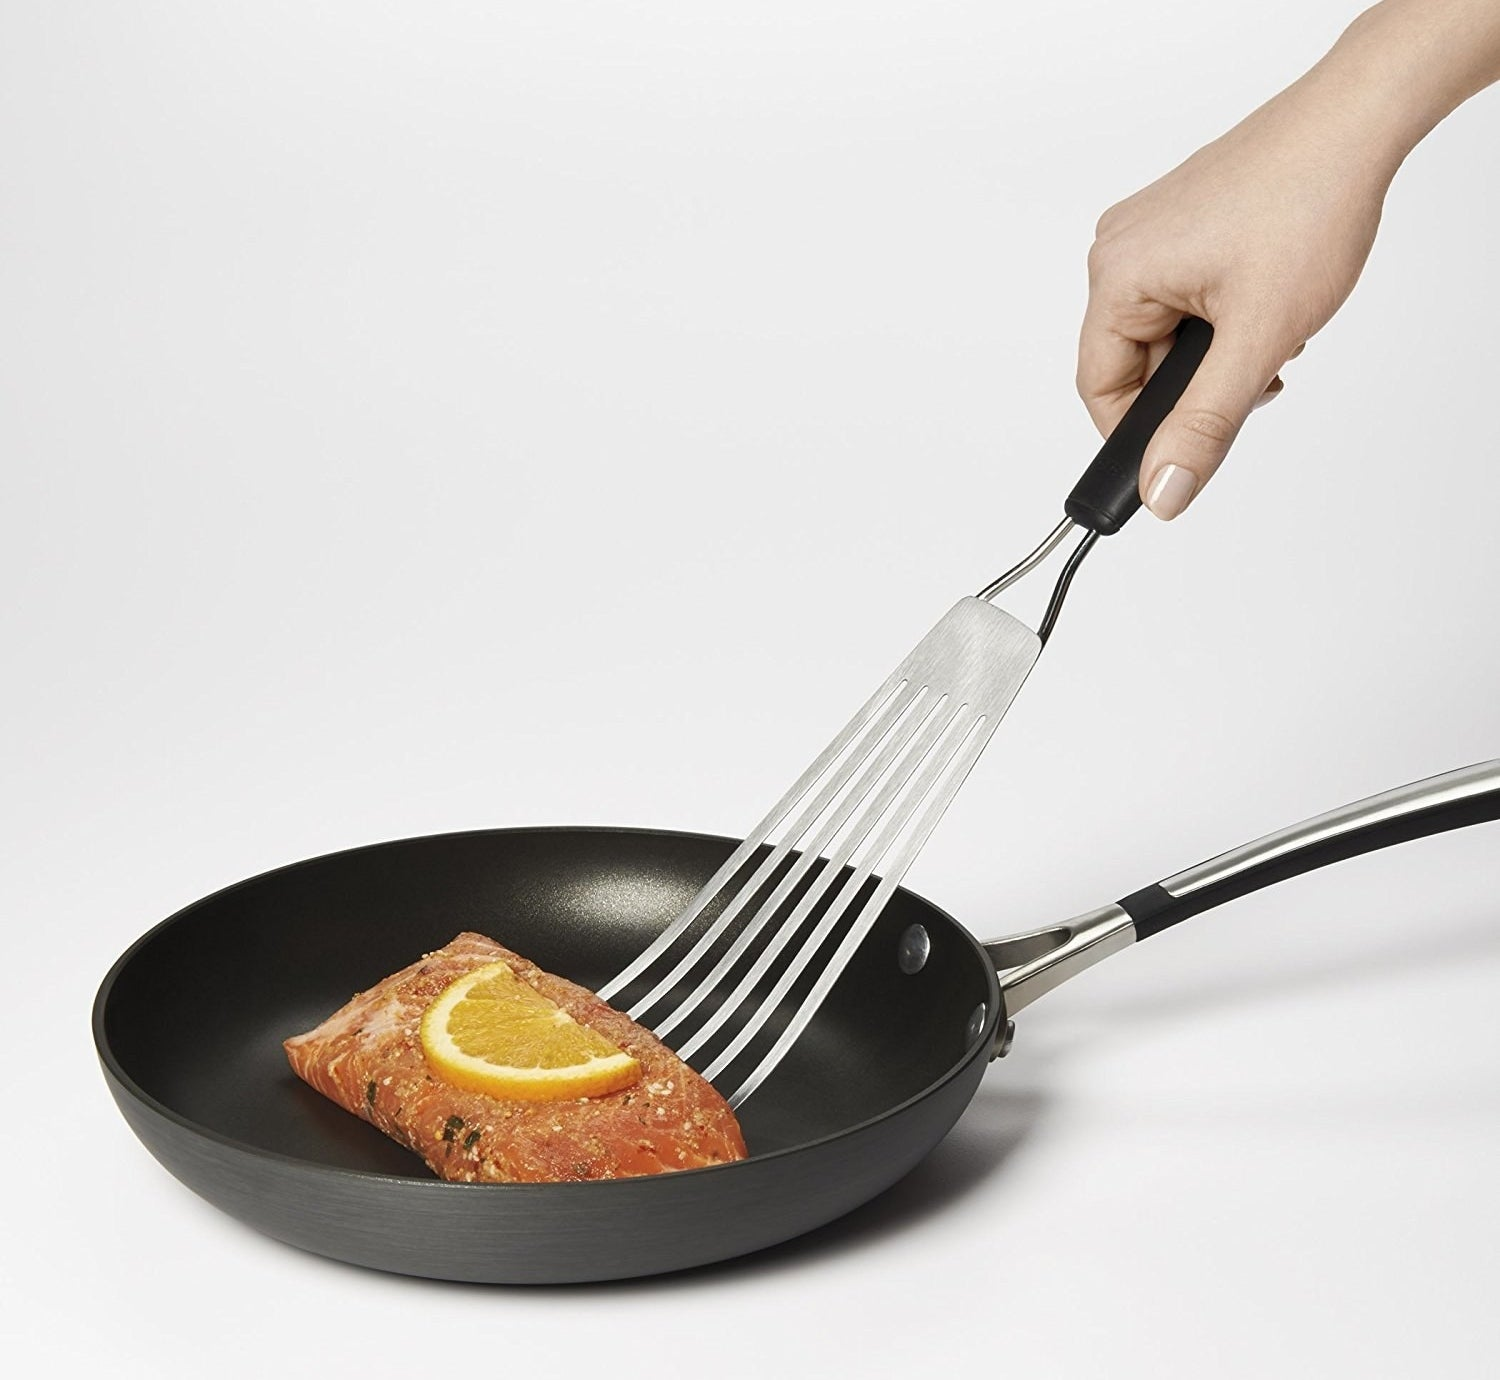 The spatula is being used to flip fish